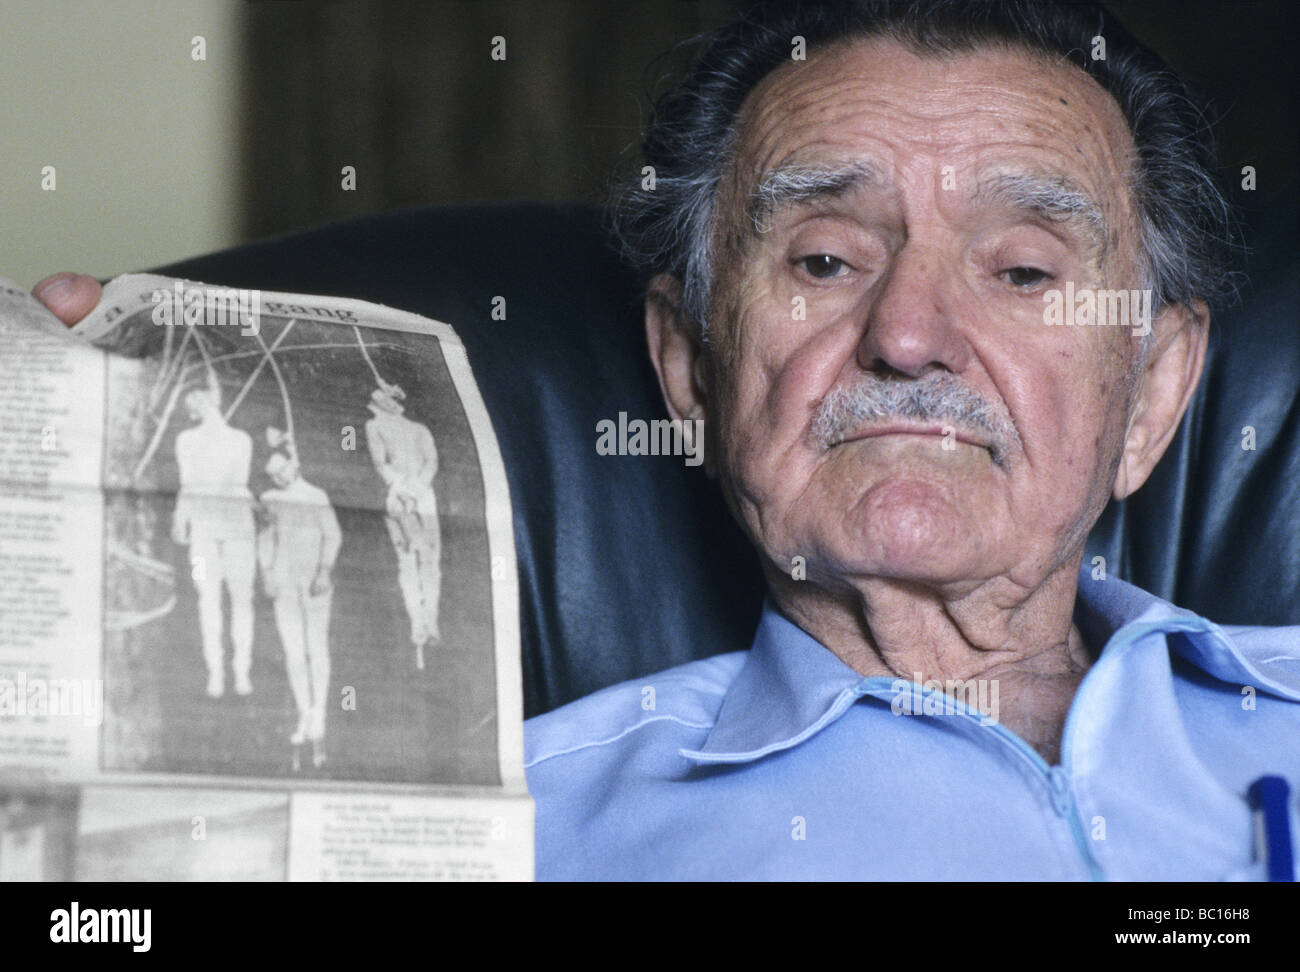 A senior man displaying a newspaper clipping depicting the last public lynching in Sonoma County, California. - Stock Image